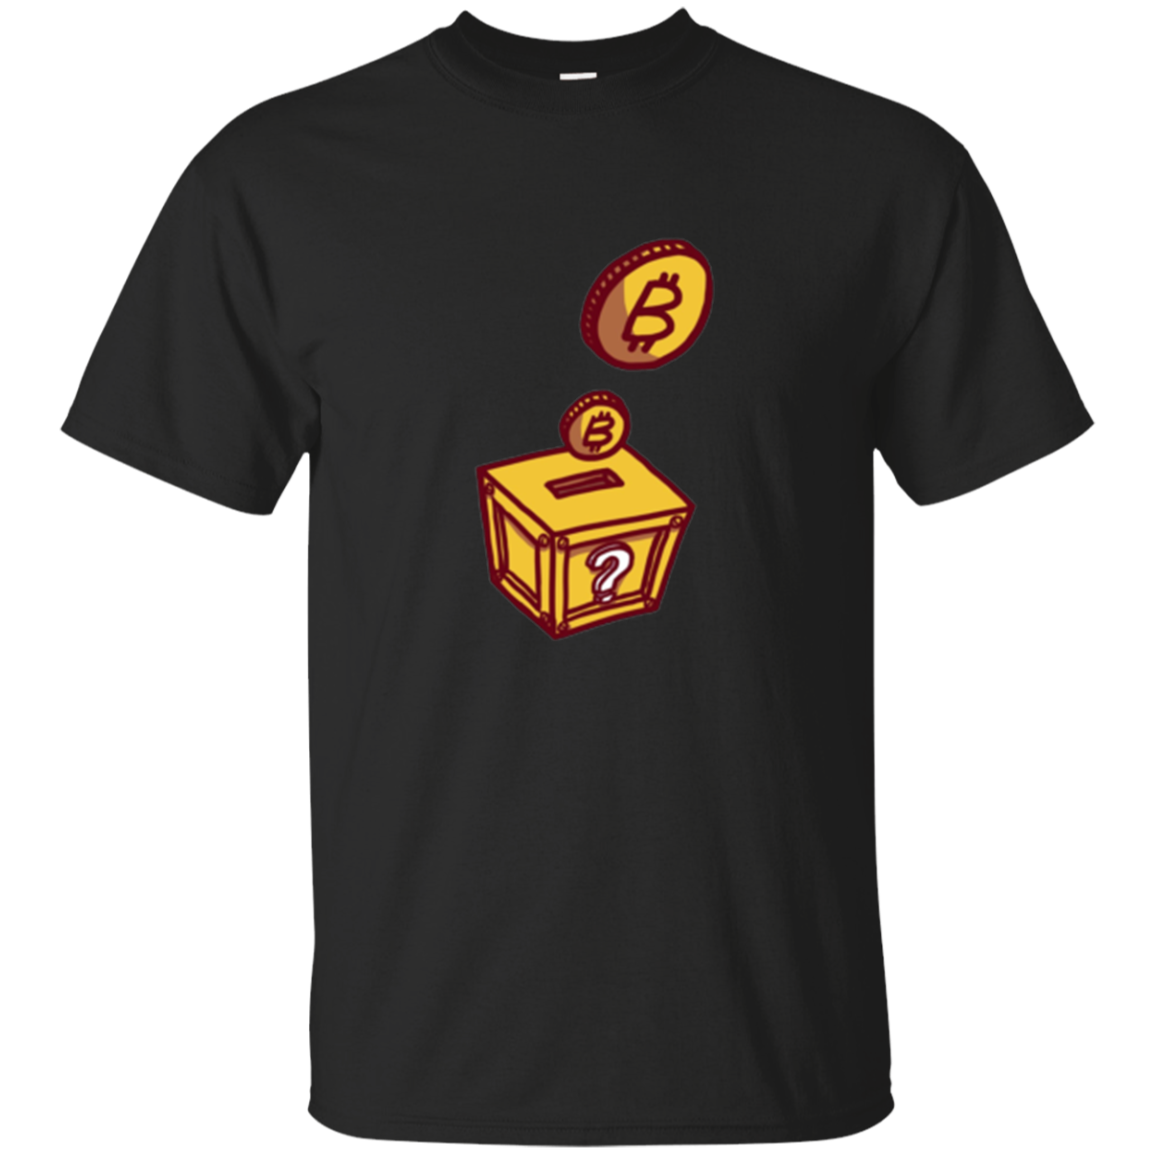 Find Funny Bitcoin Miner Crypto Cryptocurrency Gamer Gift T Shirt